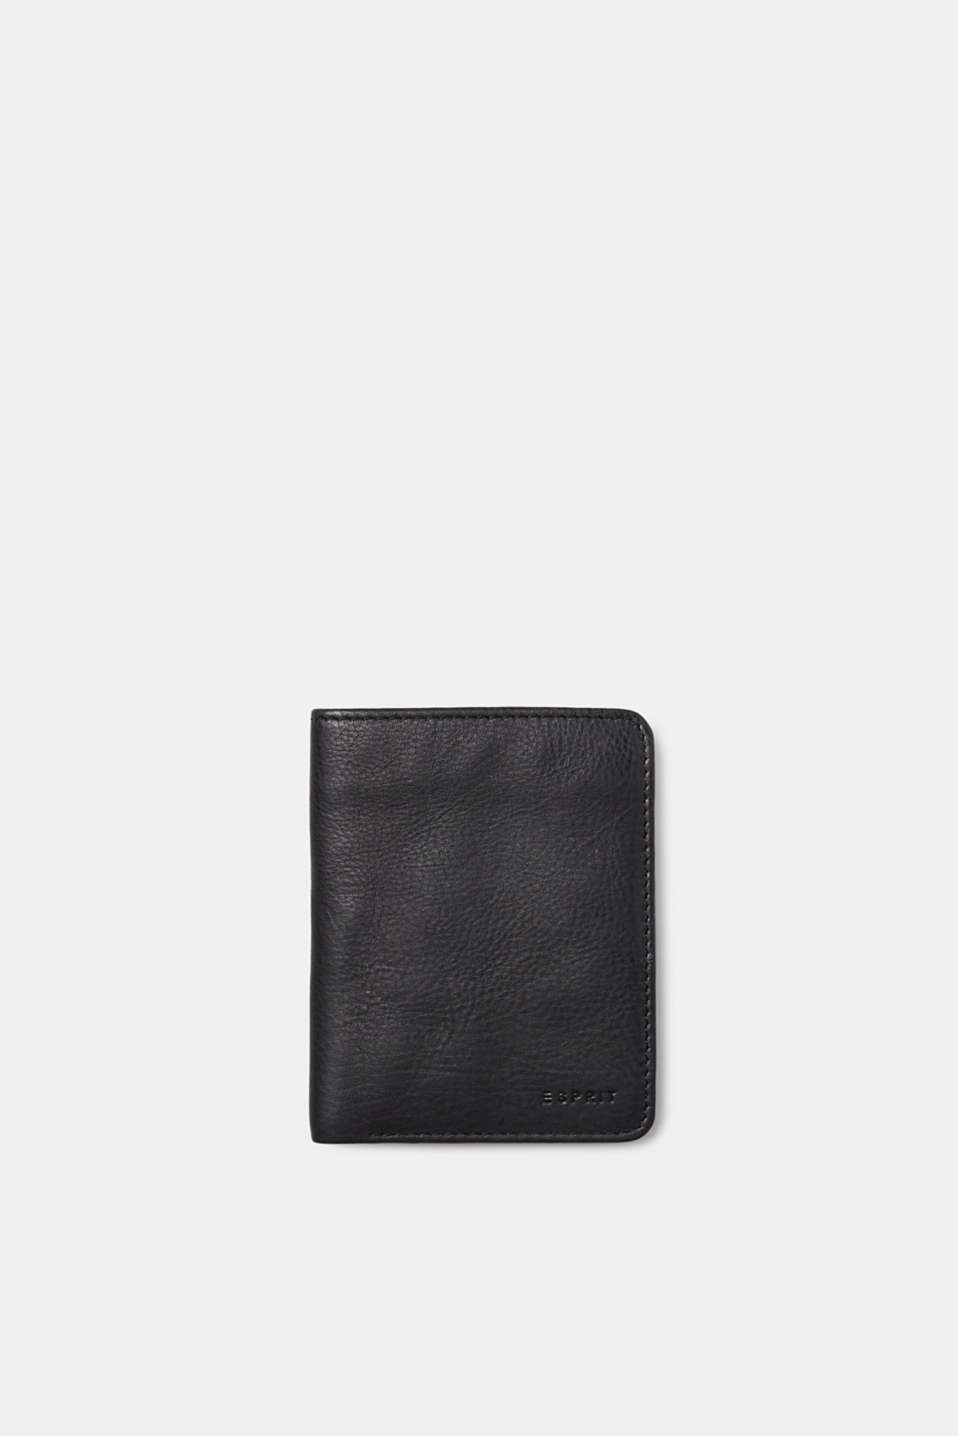 Esprit - Compact purse in leather